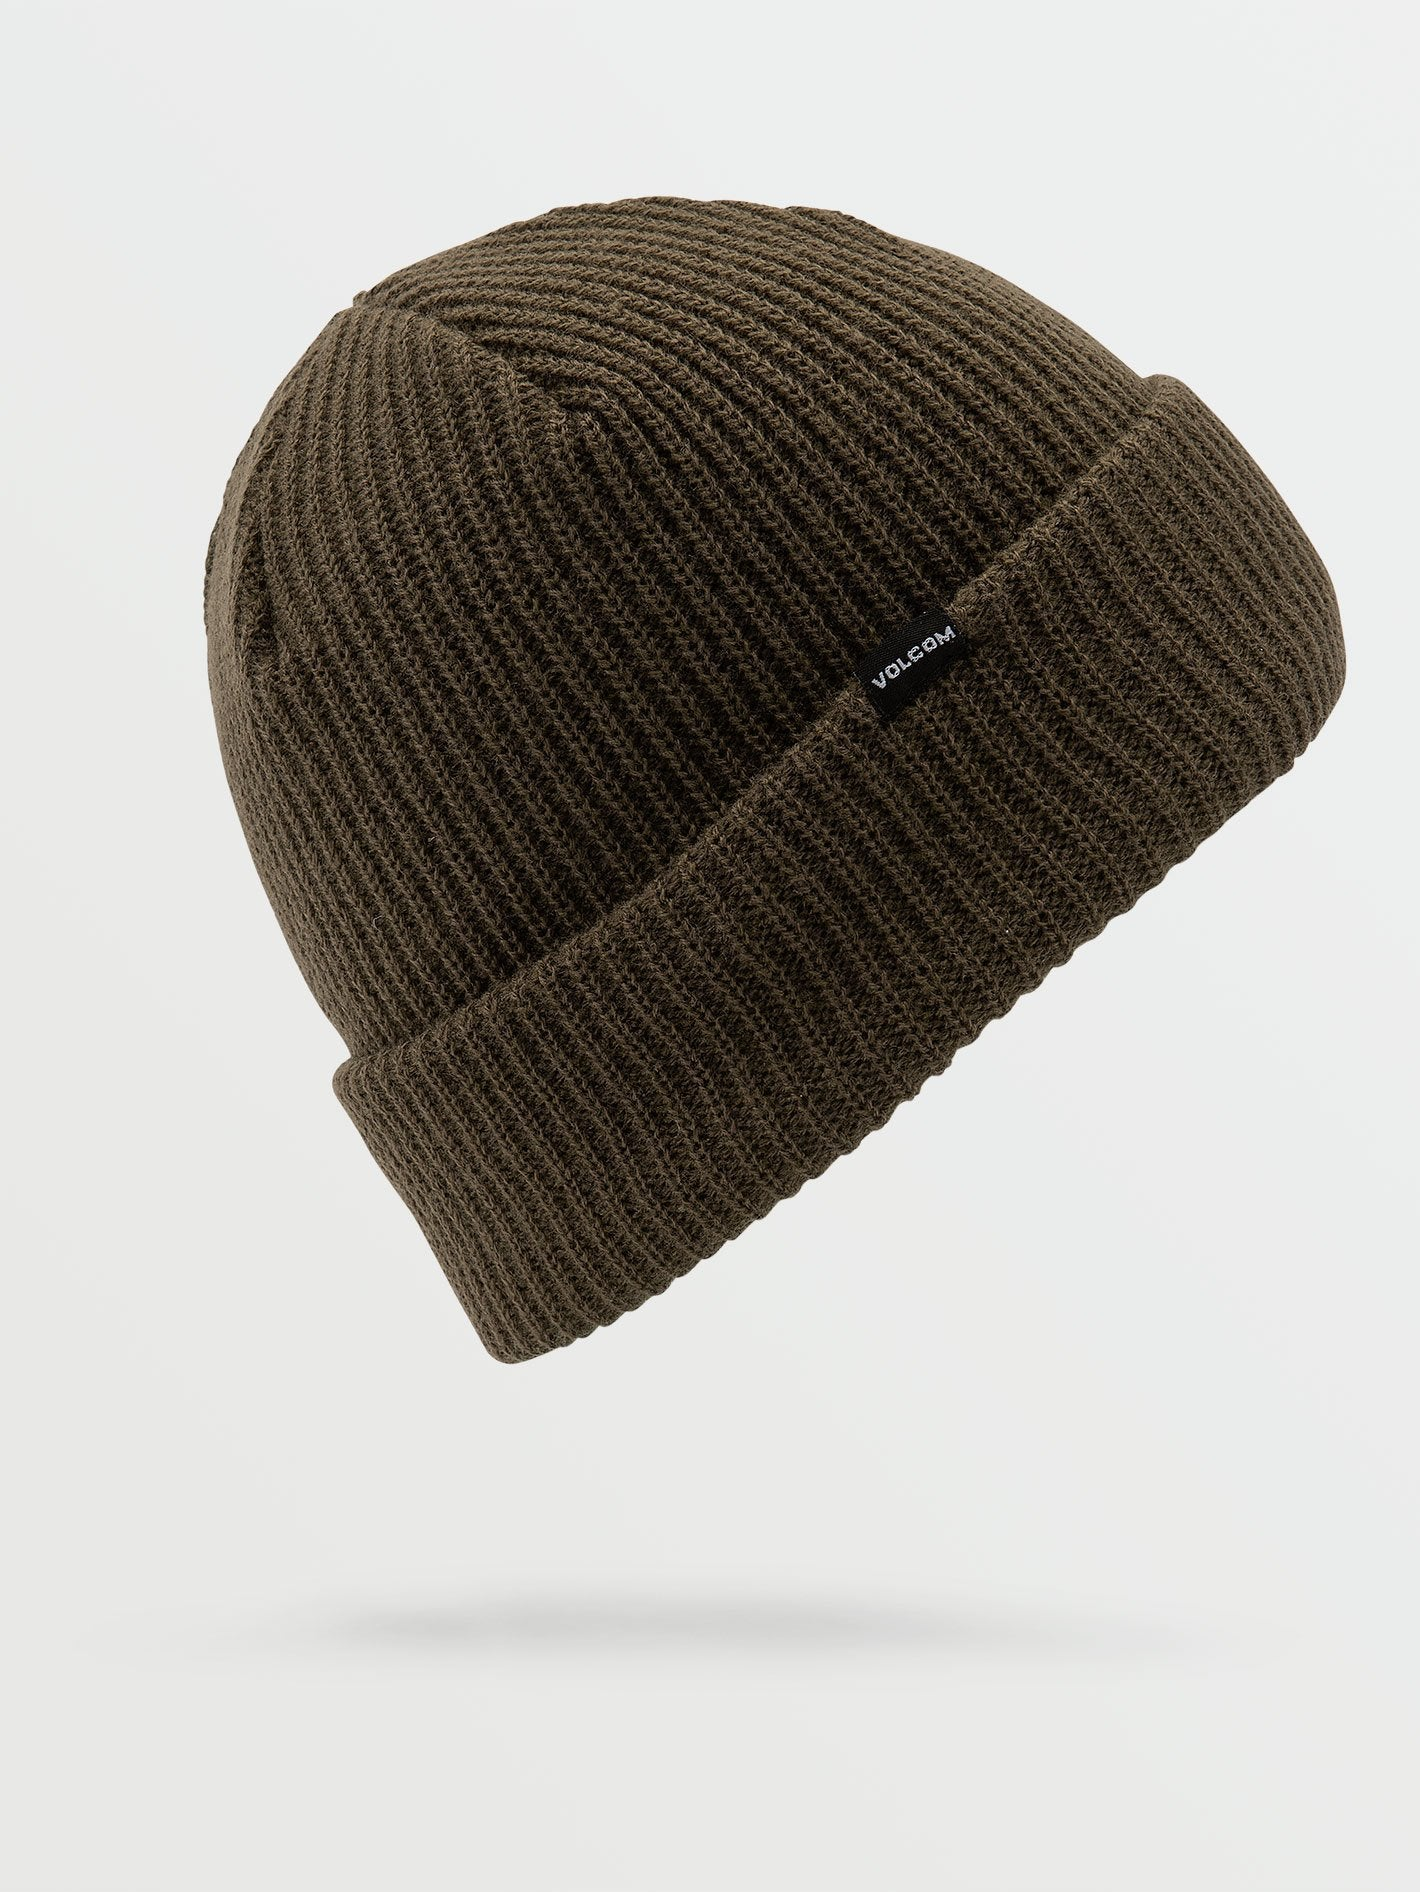 Bonnet Sweep Lined - Black Military